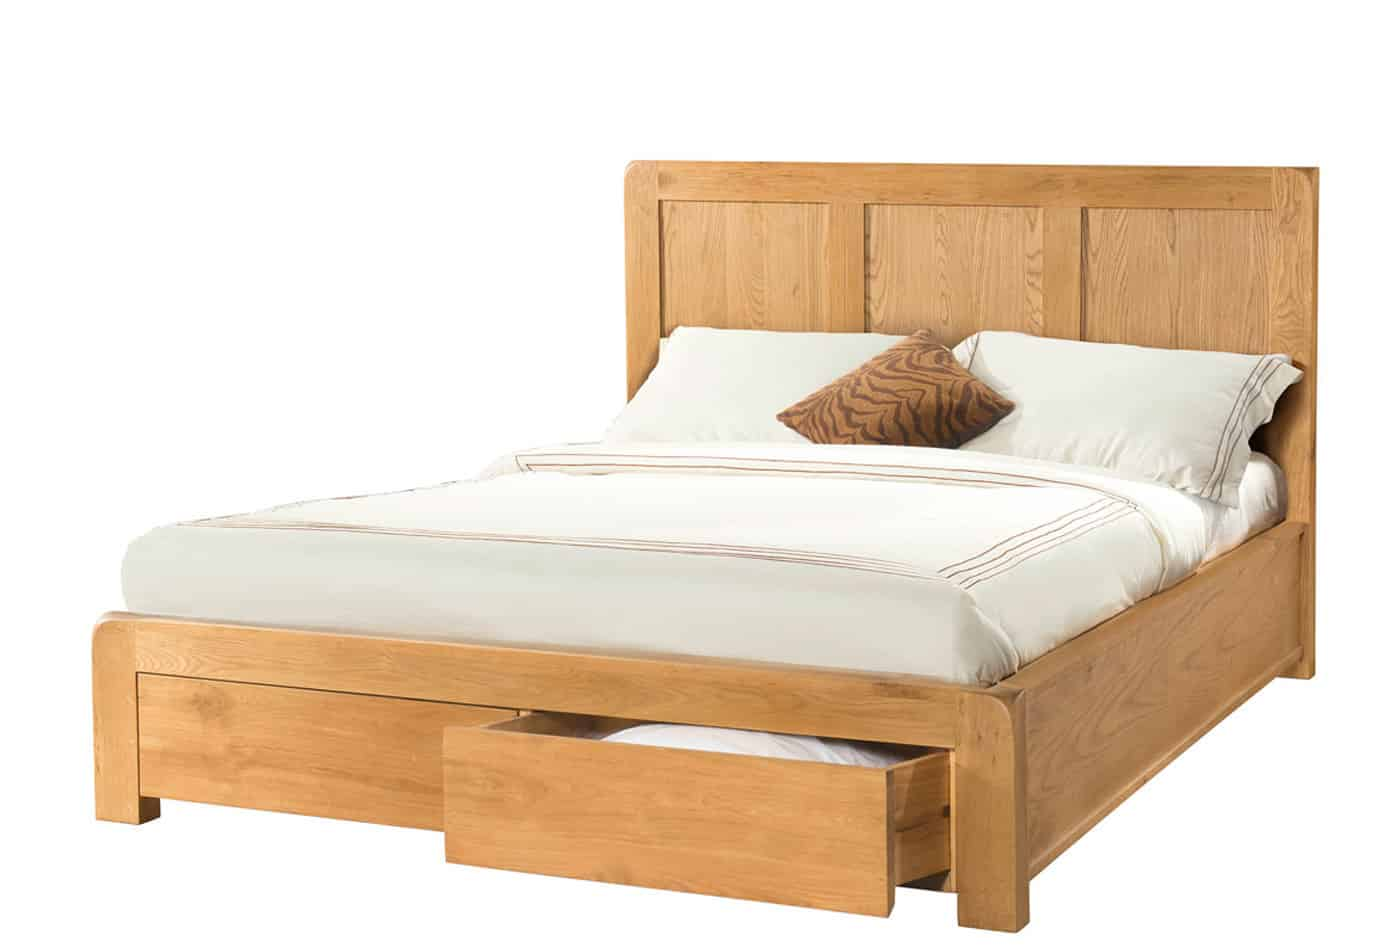 Avon Waxed Oak 5′ King Size Bed with Storage Drawers